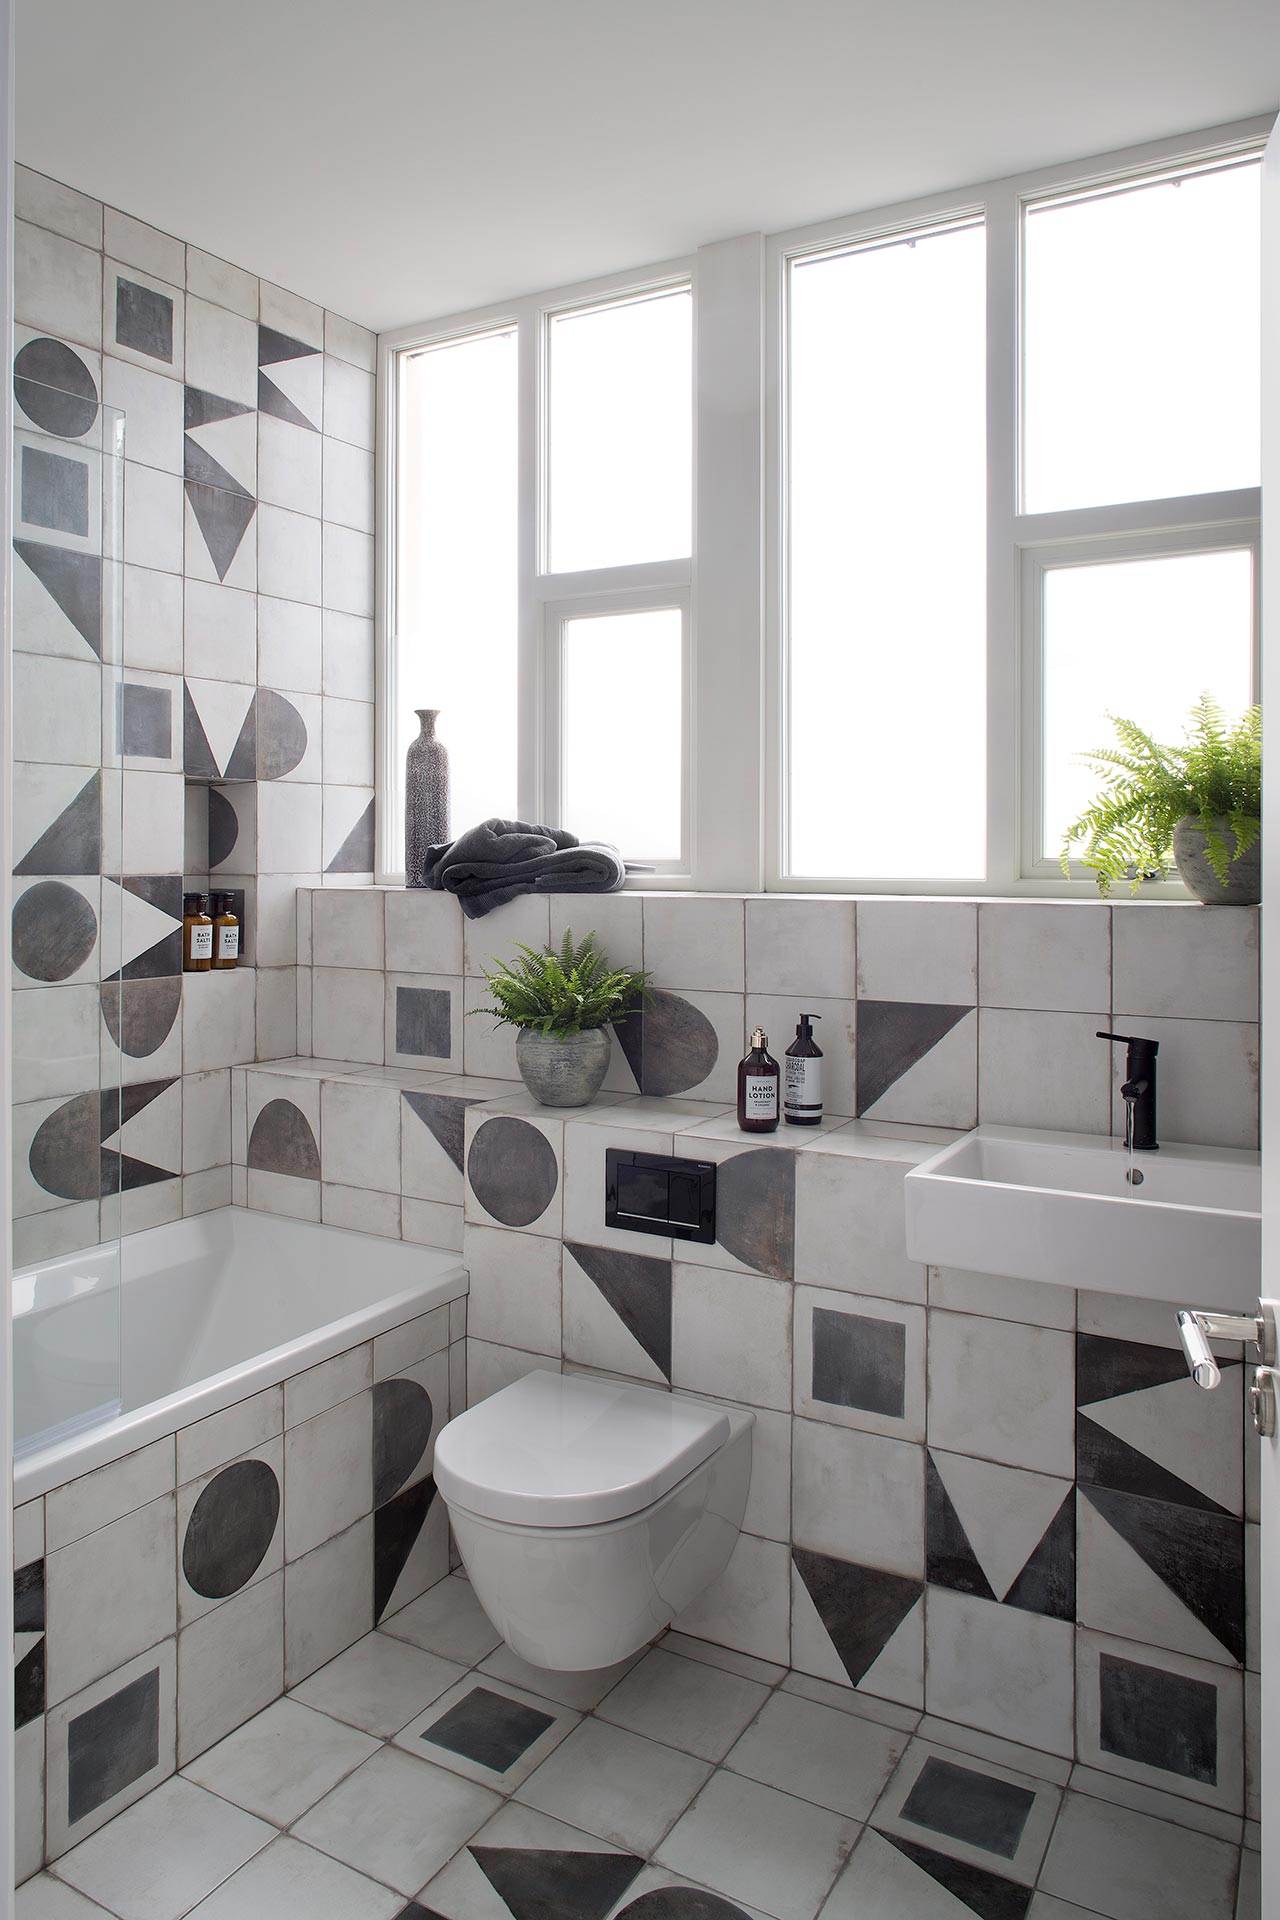 This is a black and white bathroom with geometric tiles and a bathtub, there's a window with frosted glass